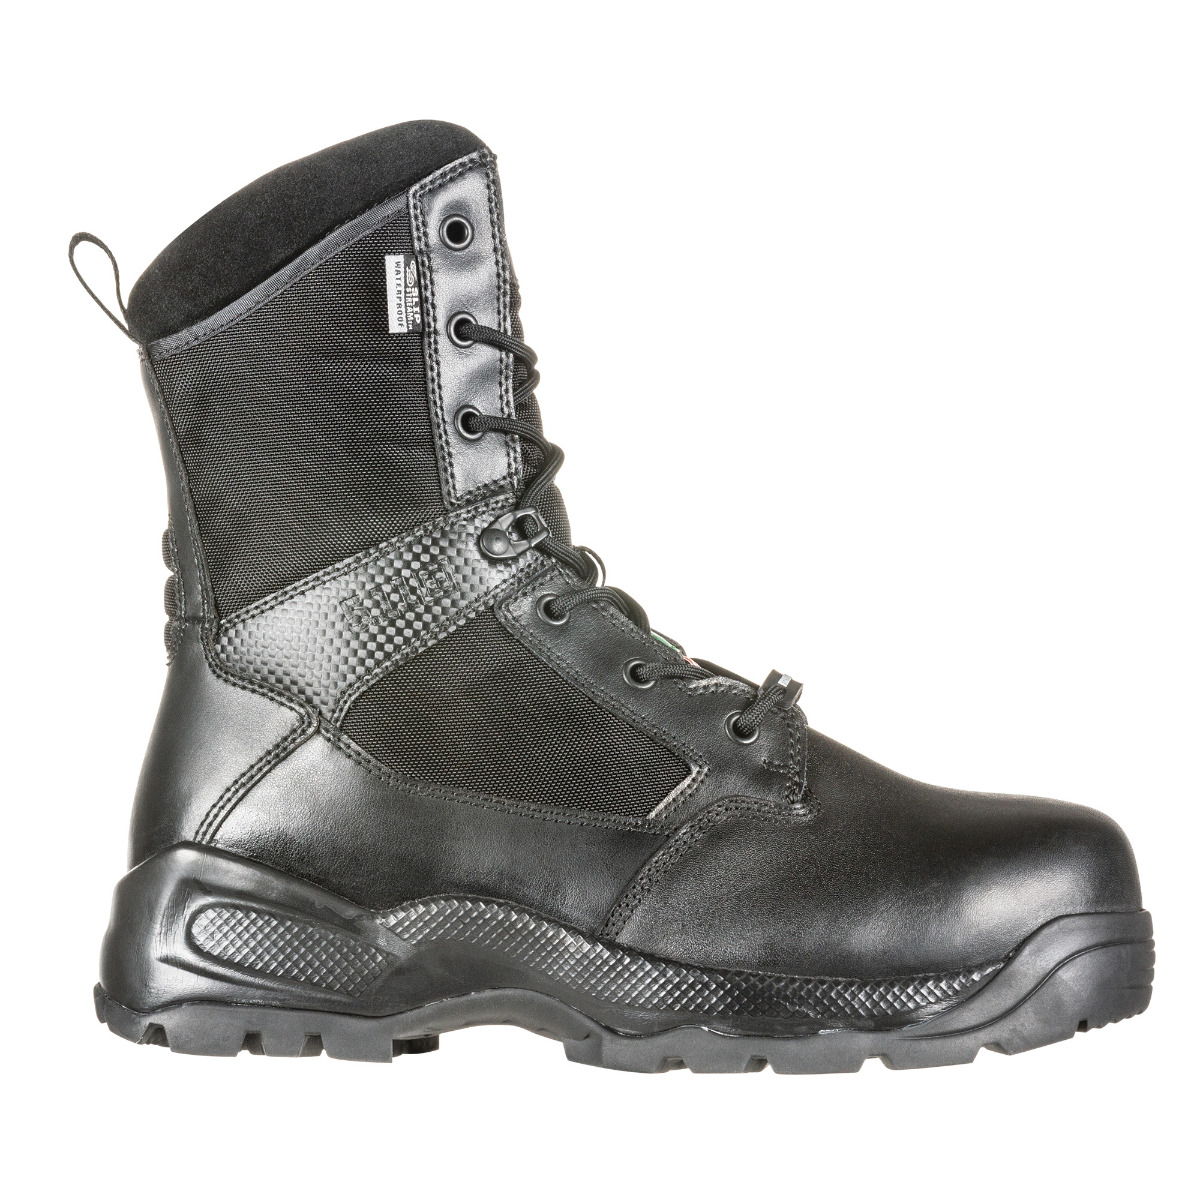 5.11 Mens XPRT 3.0 Waterproof 6 Boot Fire and Safety Black 8 Medium US